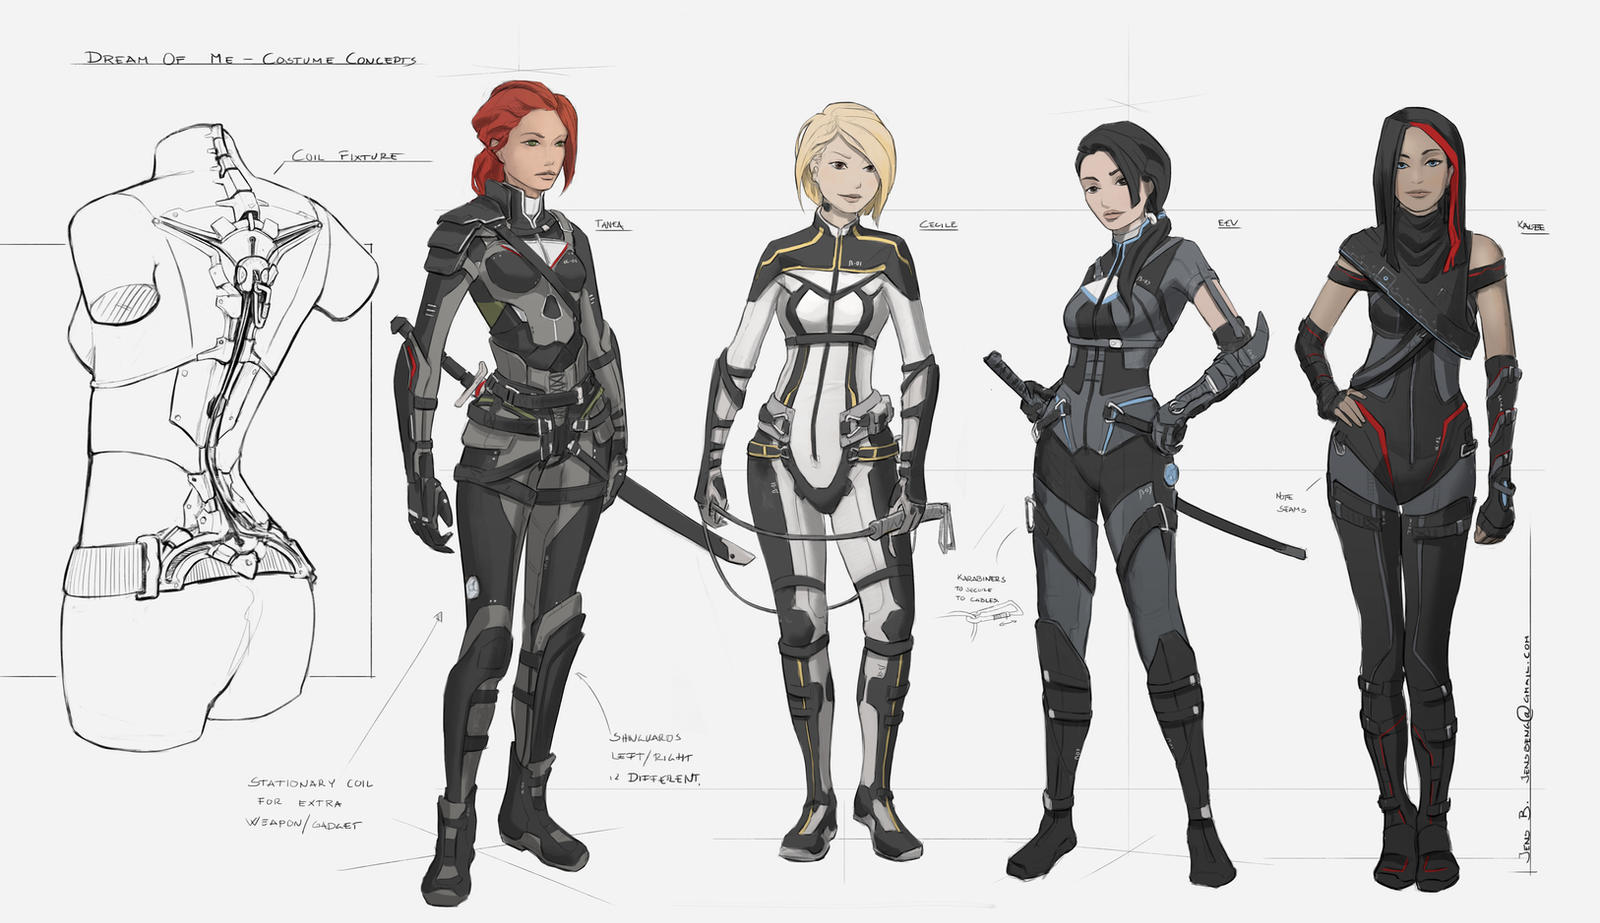 Character Design Up : Dream of me character lineup by caconymdesign on deviantart